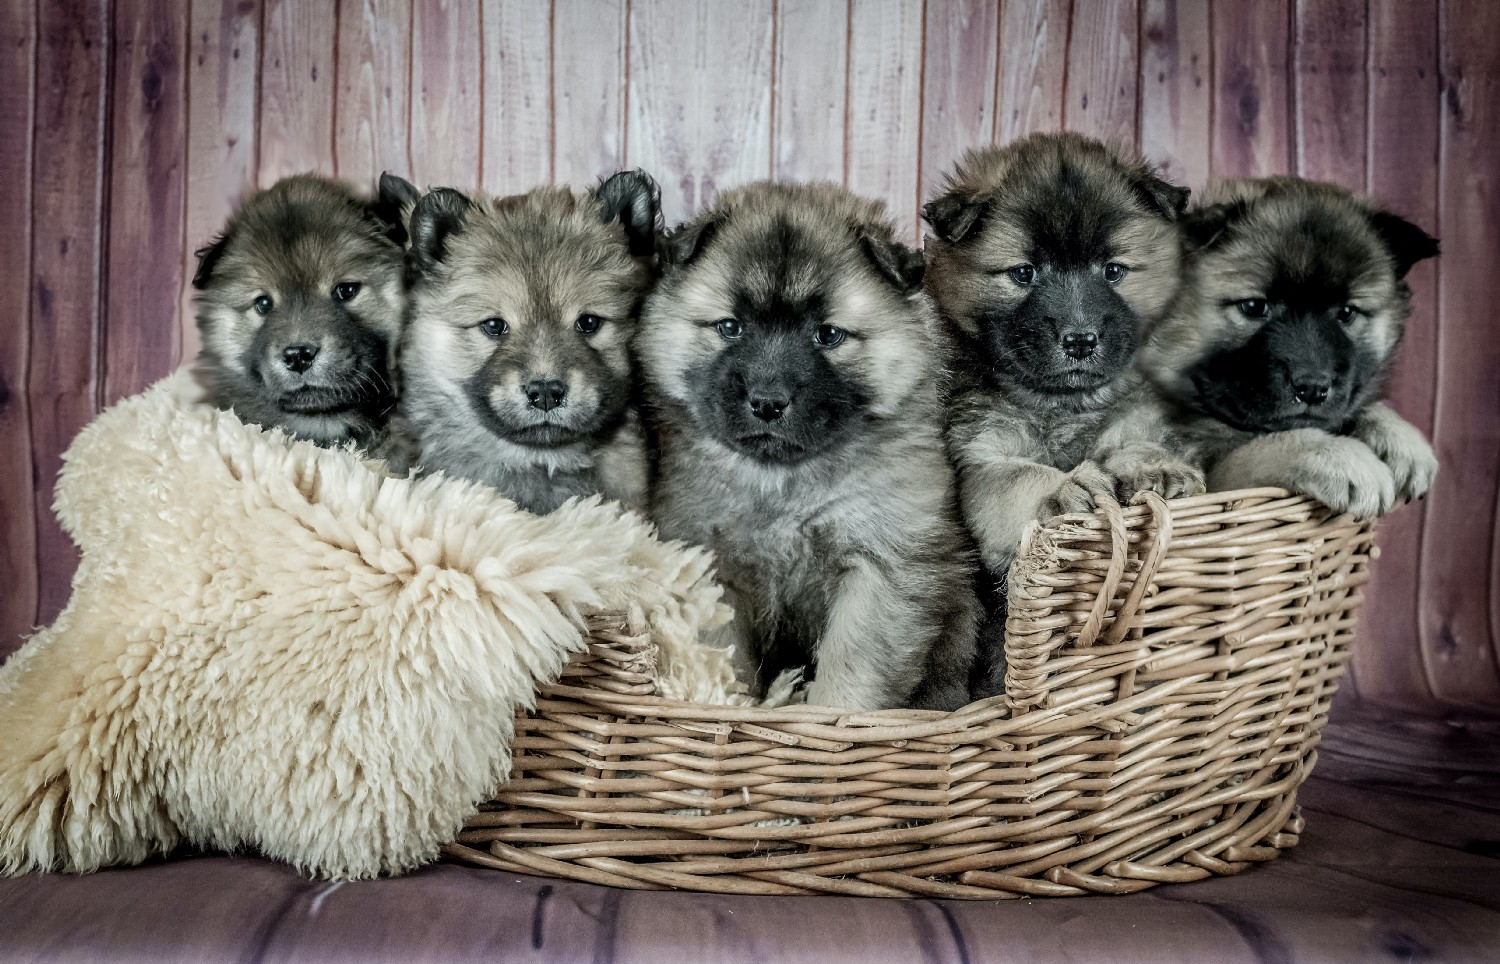 Five German shepherd puppies in a wooden basket.